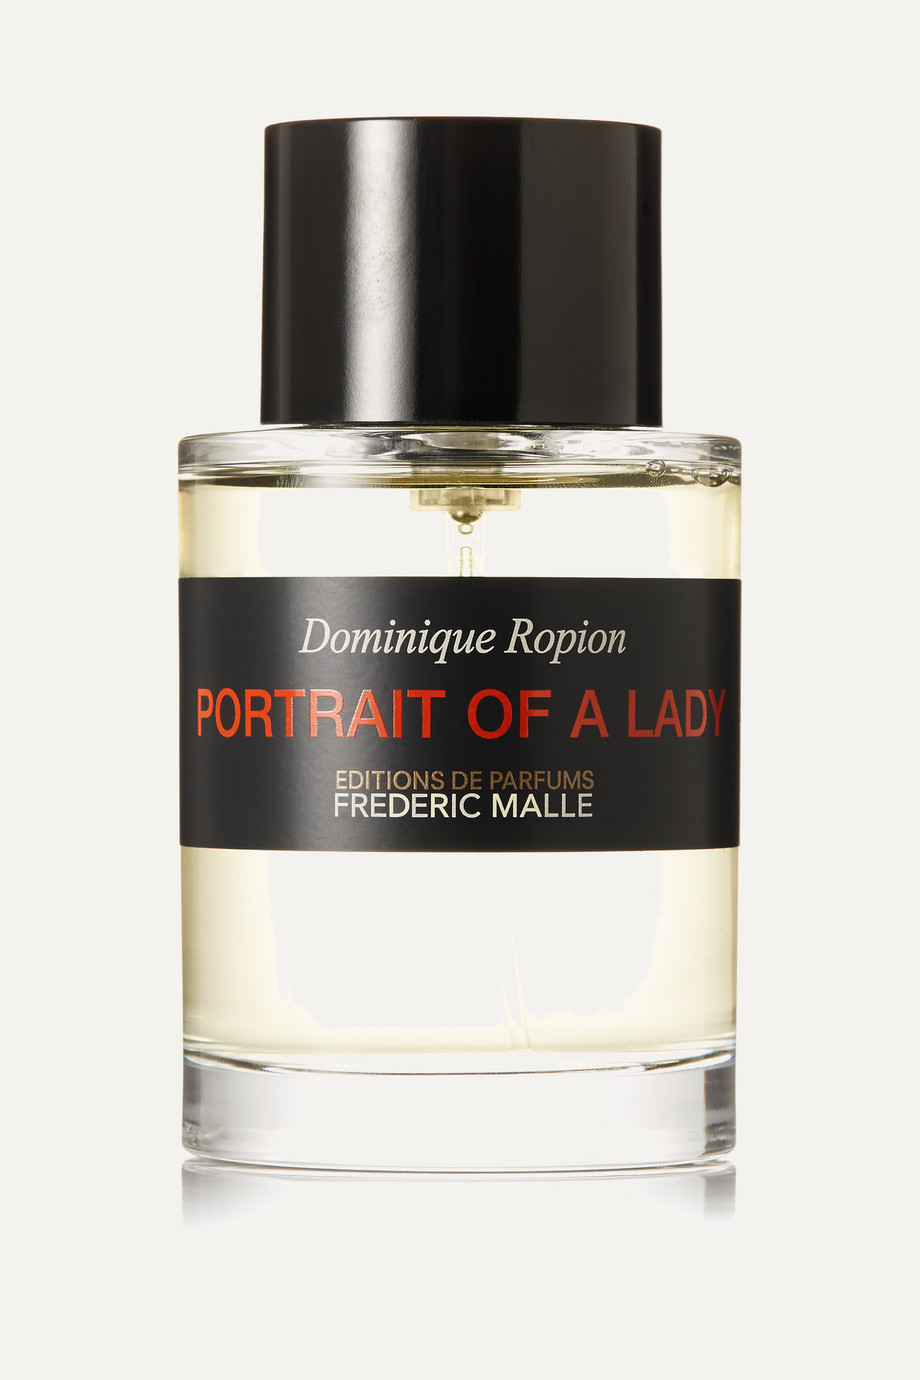 Frederic Malle Portrait of a Lady Eau de Parfum - Turkish Rose & Patchouli, 100ml